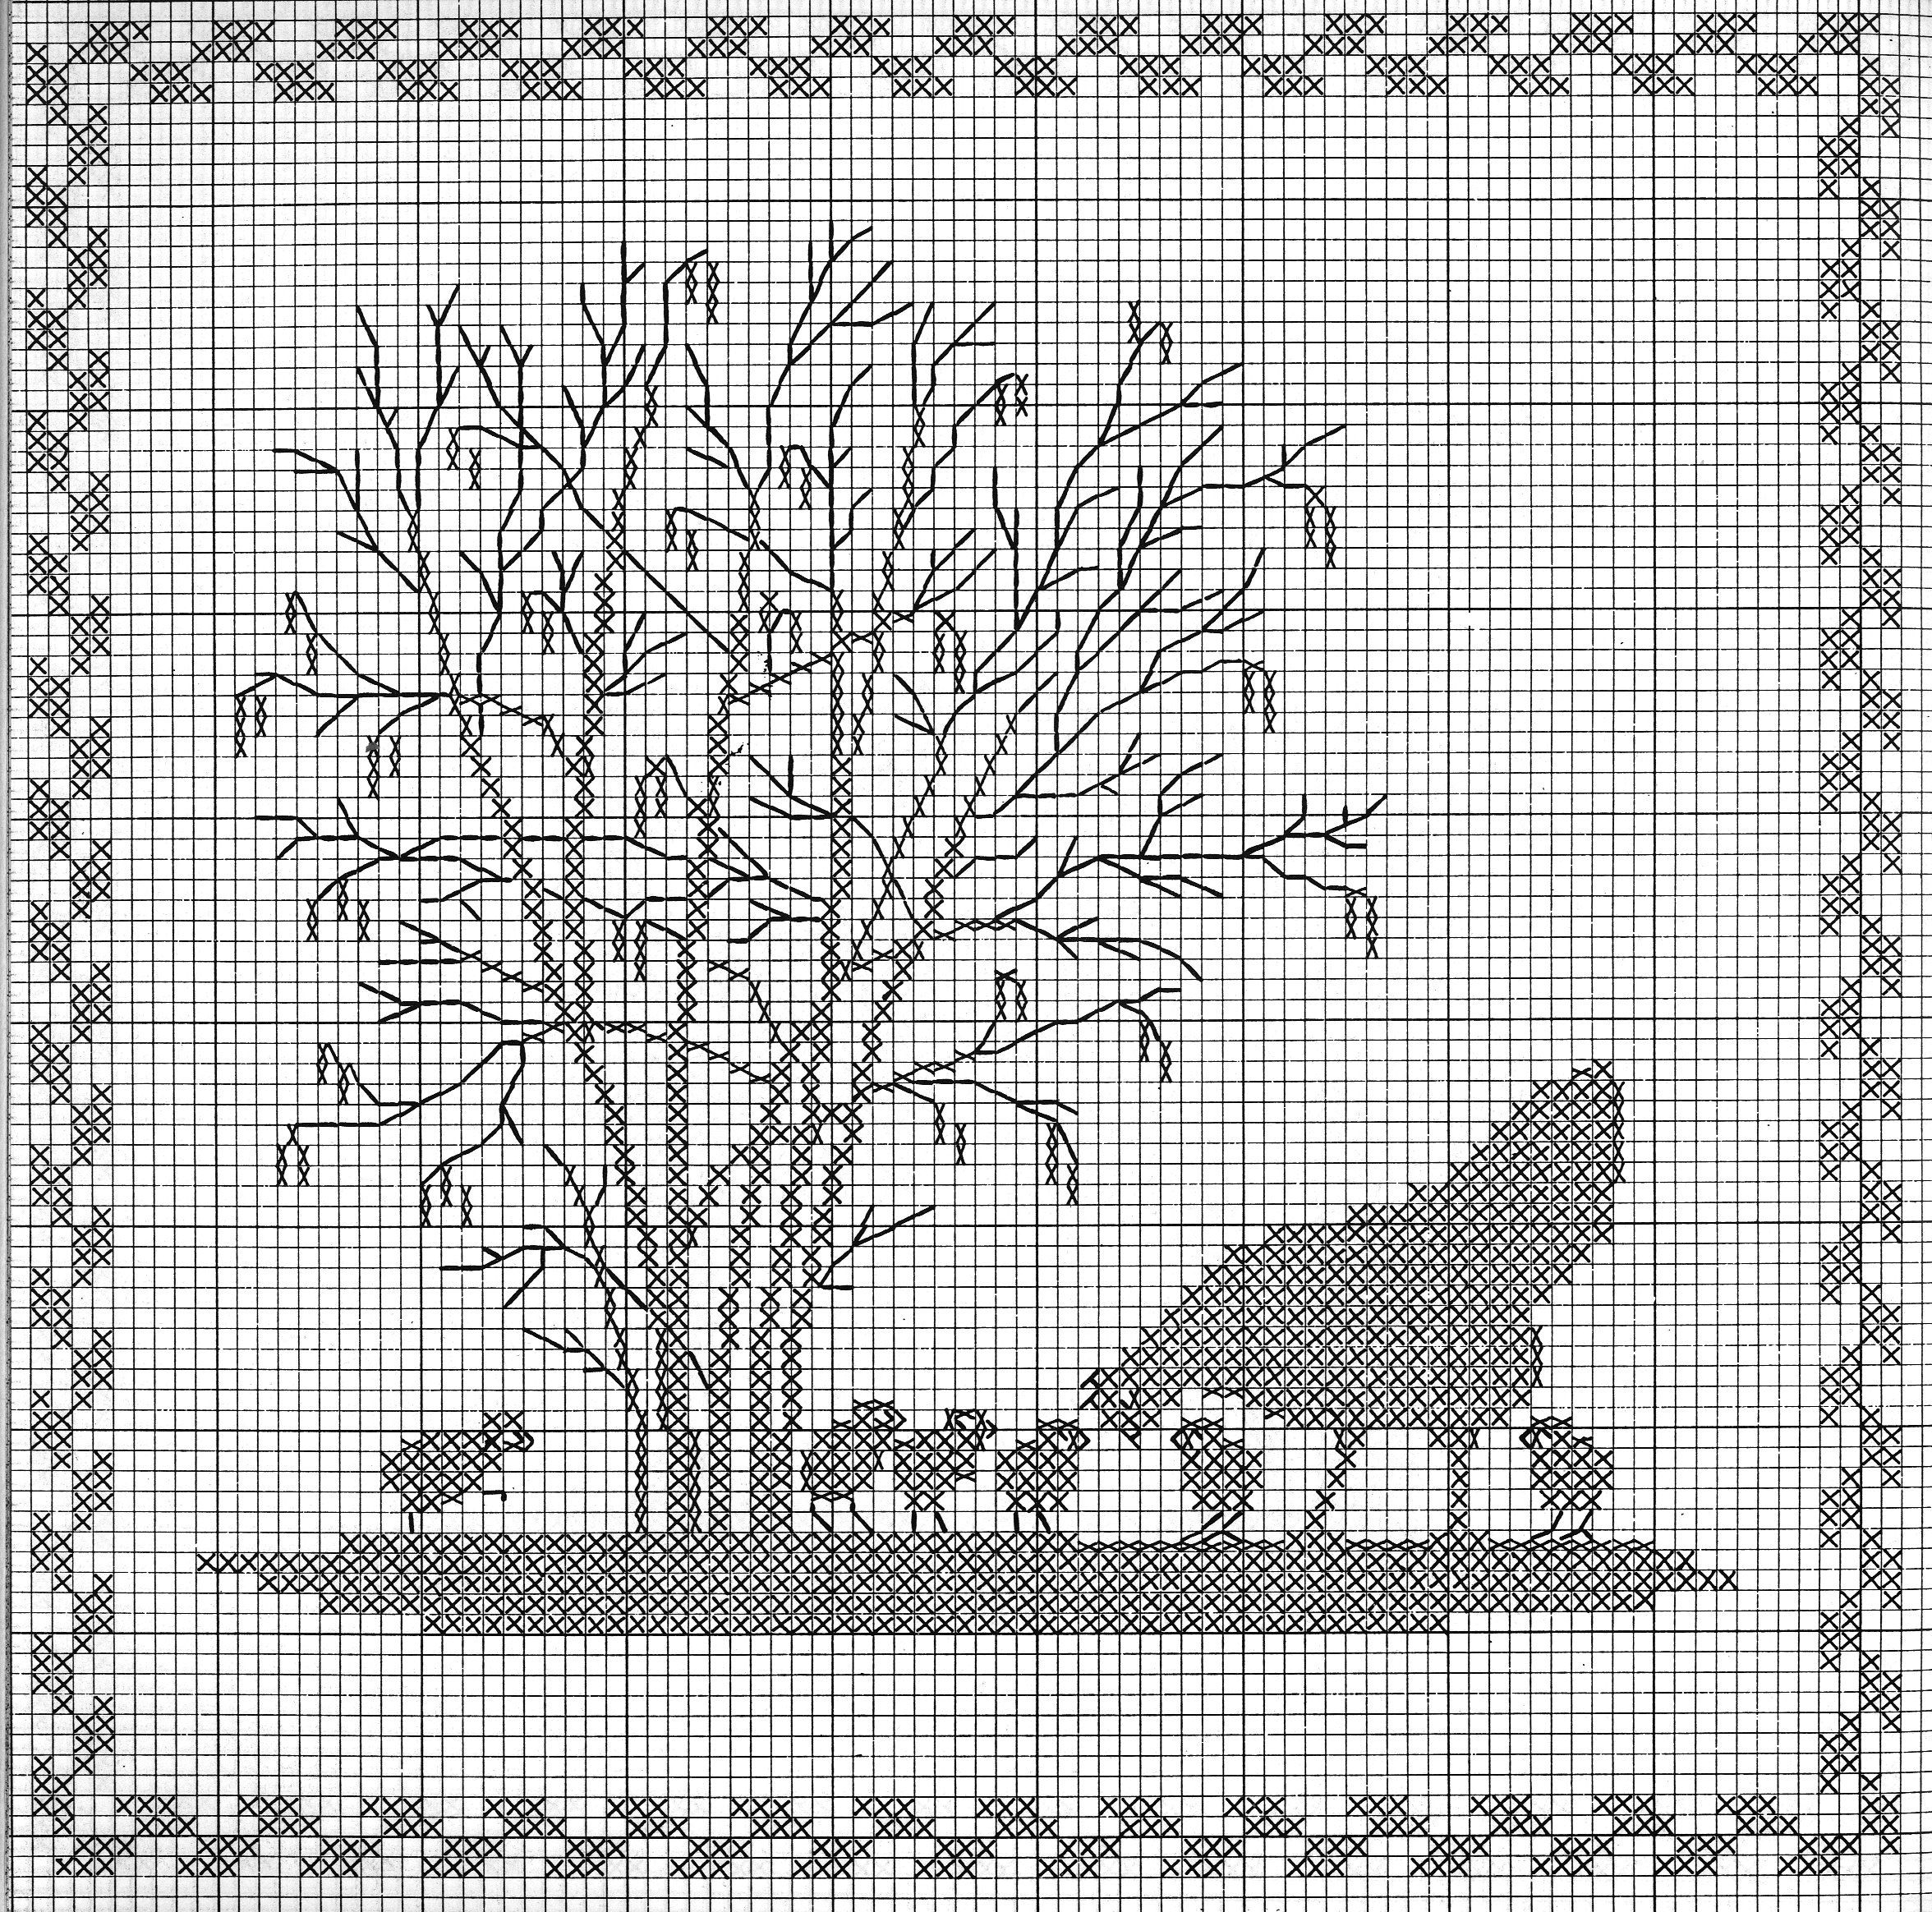 Pin von Brenda Britt auf chart for Filet Crochet 8 | Pinterest ...